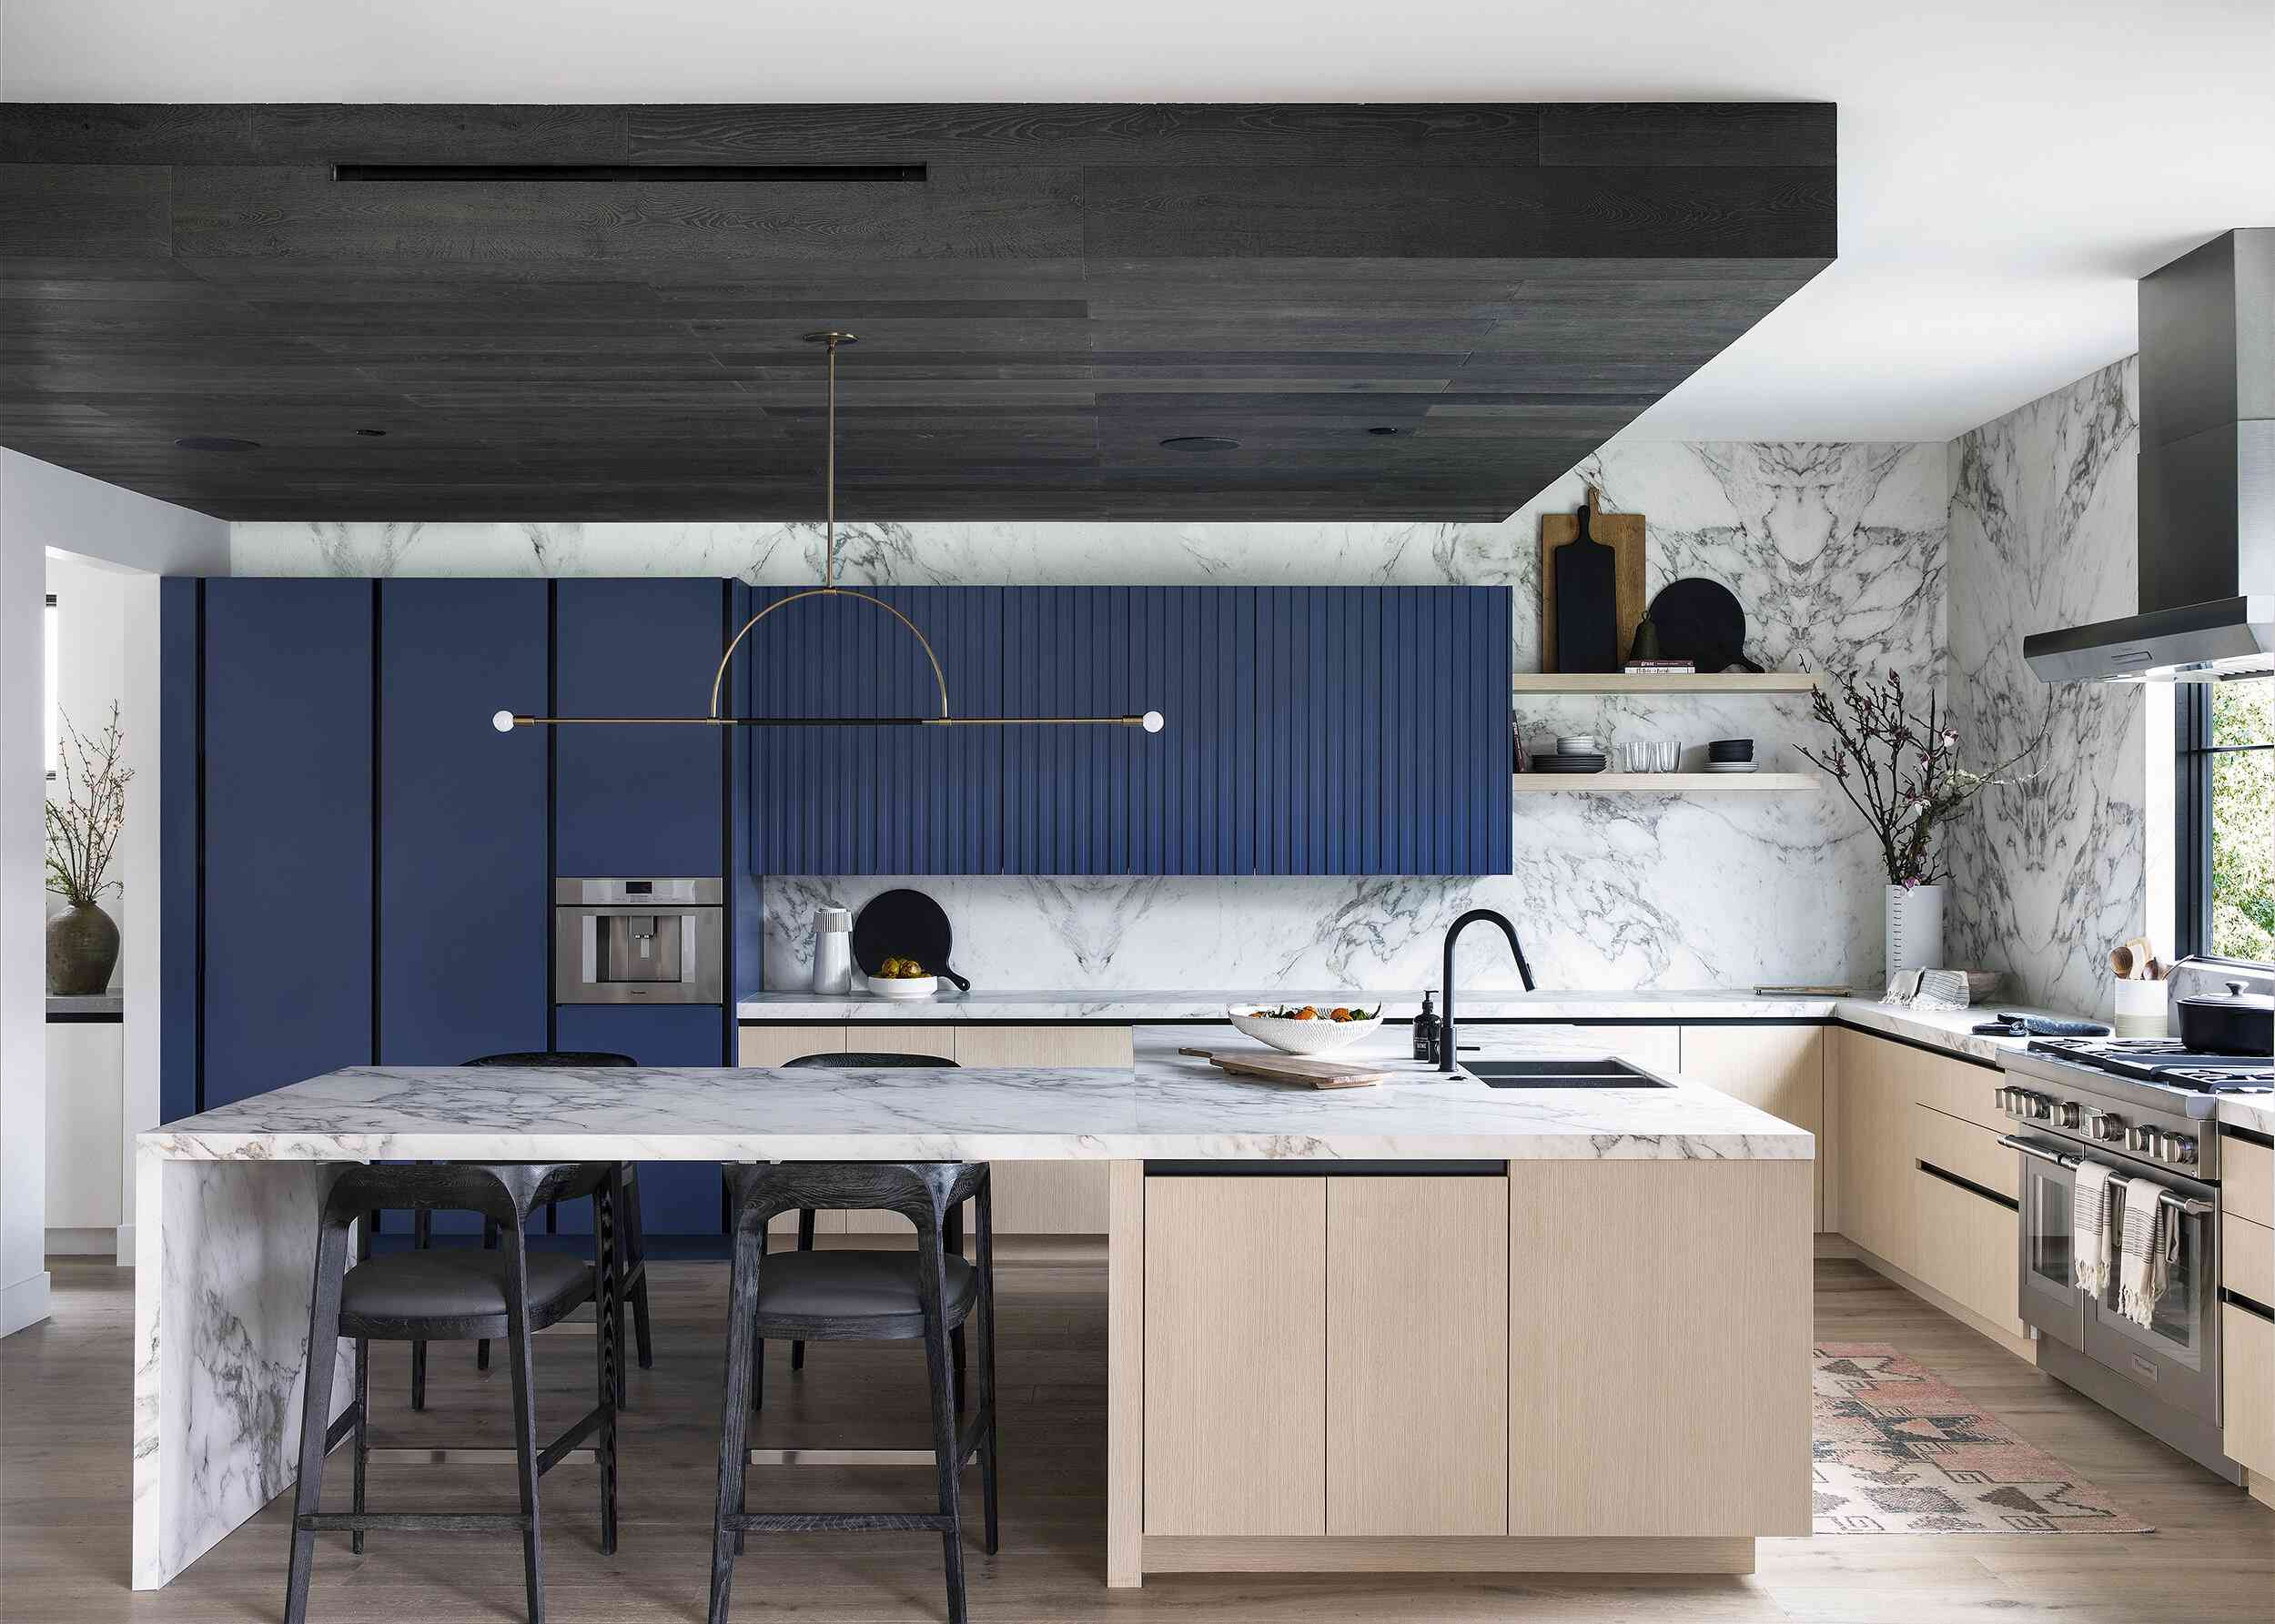 A kitchen with a striking marble backsplash that runs from ceiling to countertop